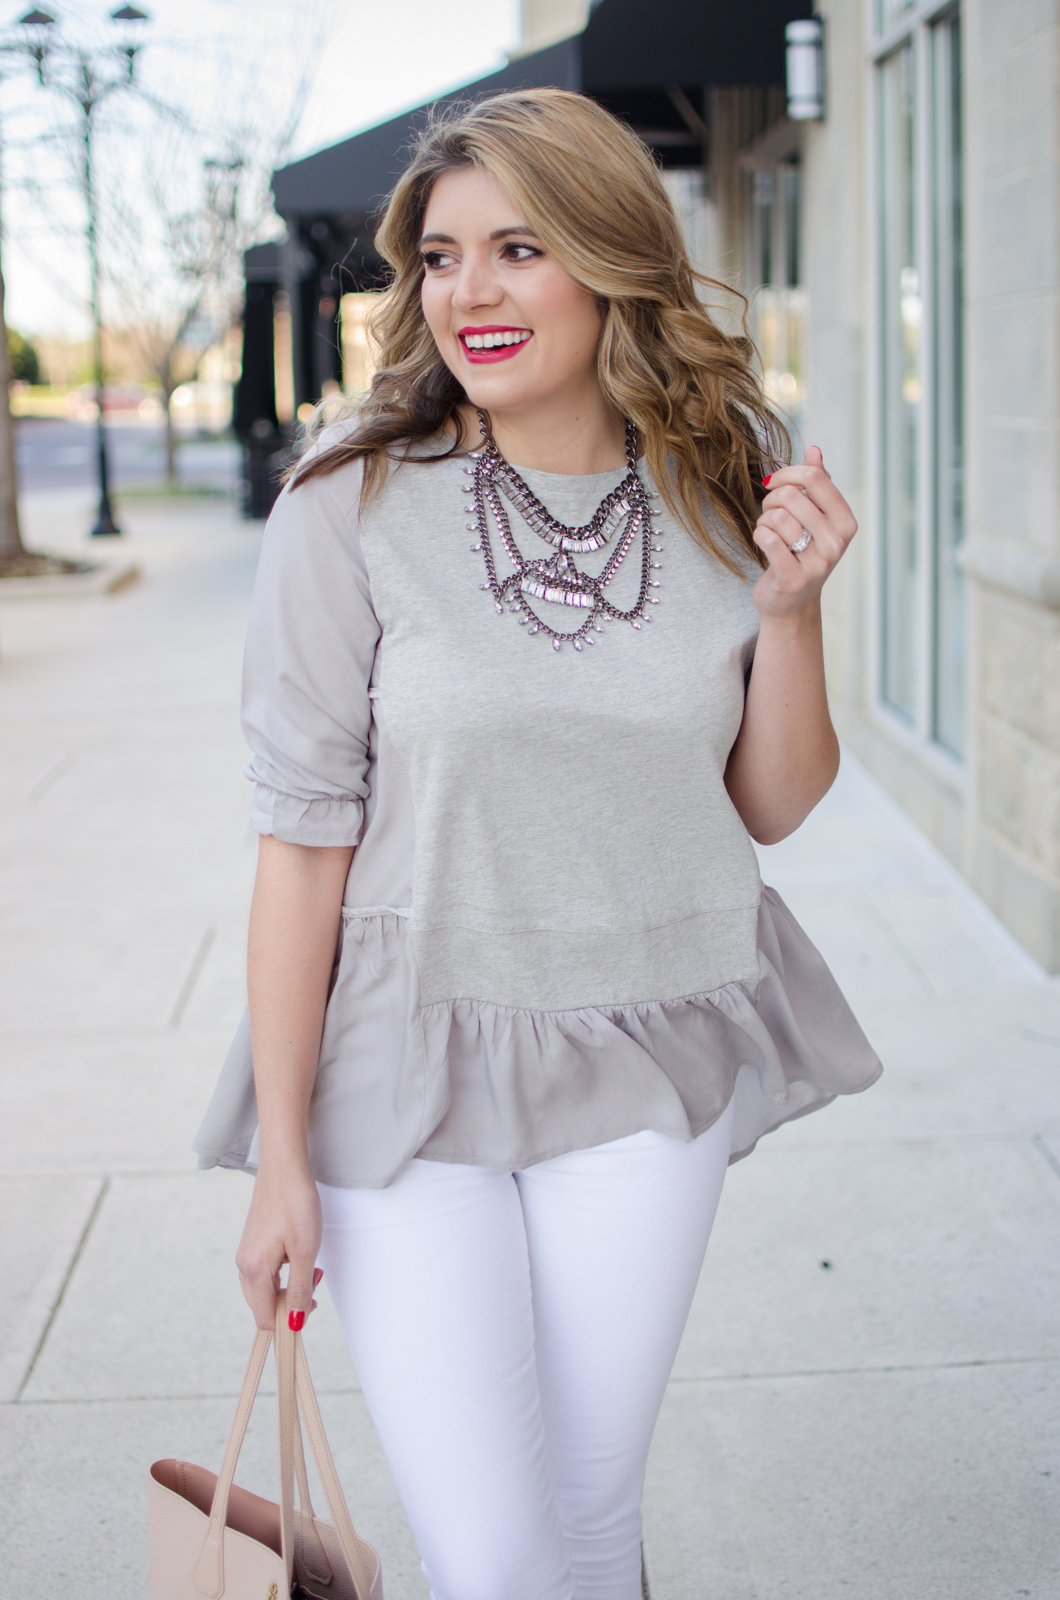 gray and white spring outfit with gray ruffle tee - Click through for more cute Spring outfits or to shop this look! bylaurenm.com